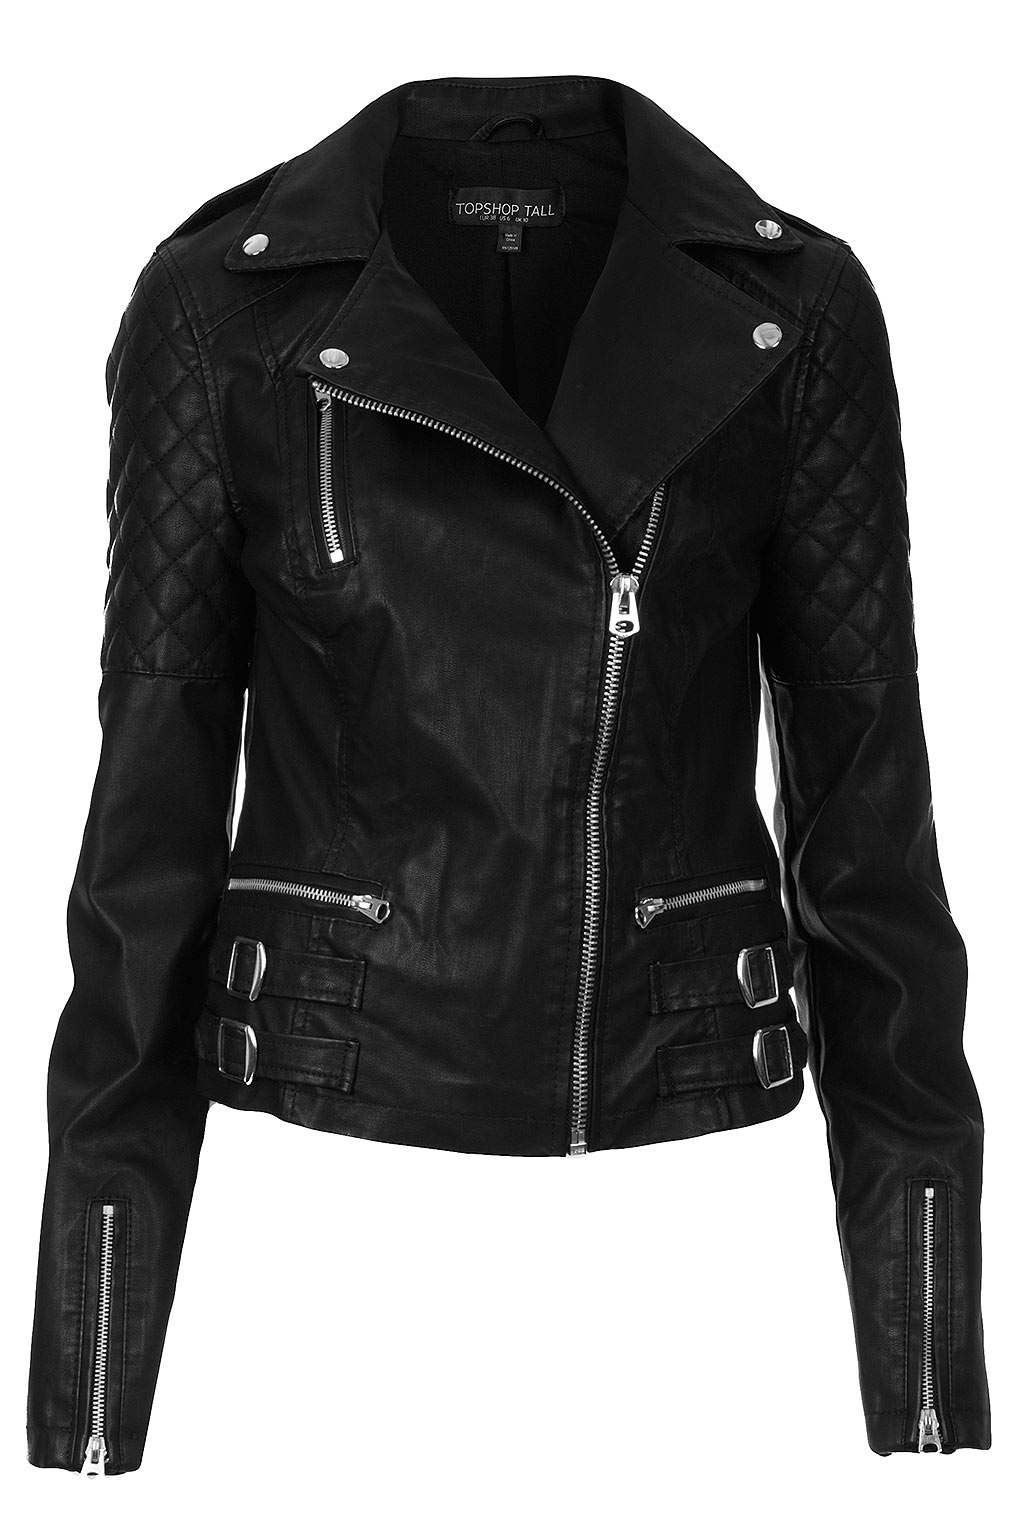 Topshop Tall Biker Jacket in Black